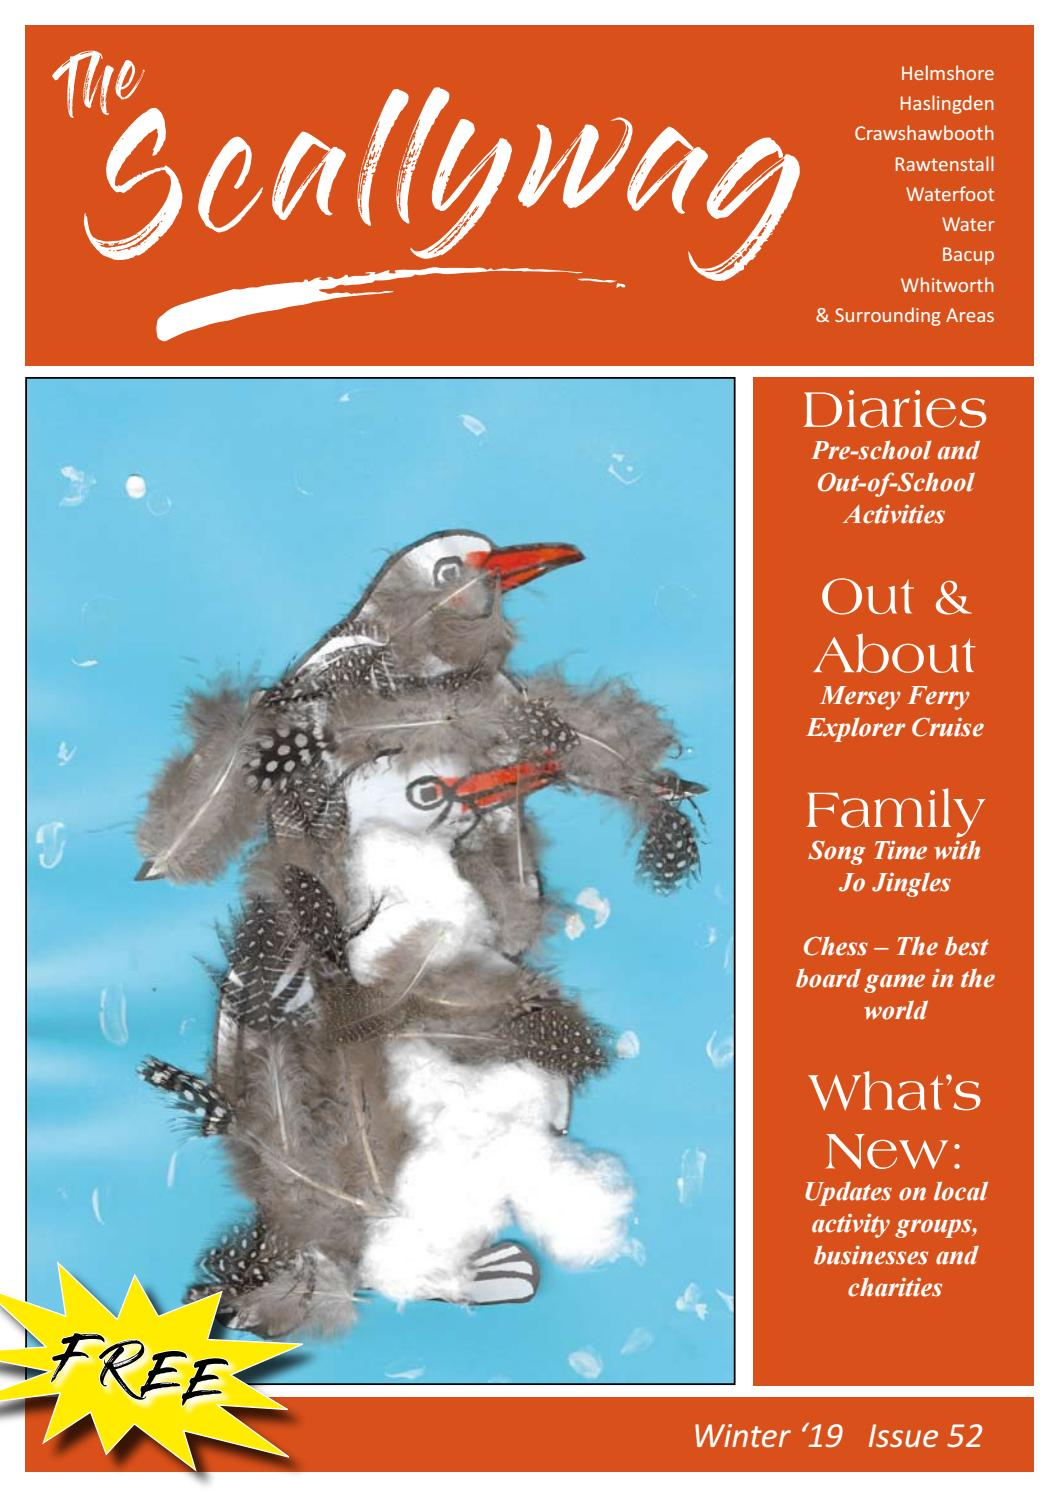 The Scallywag magazine - Winter 2019 by The Scallywag